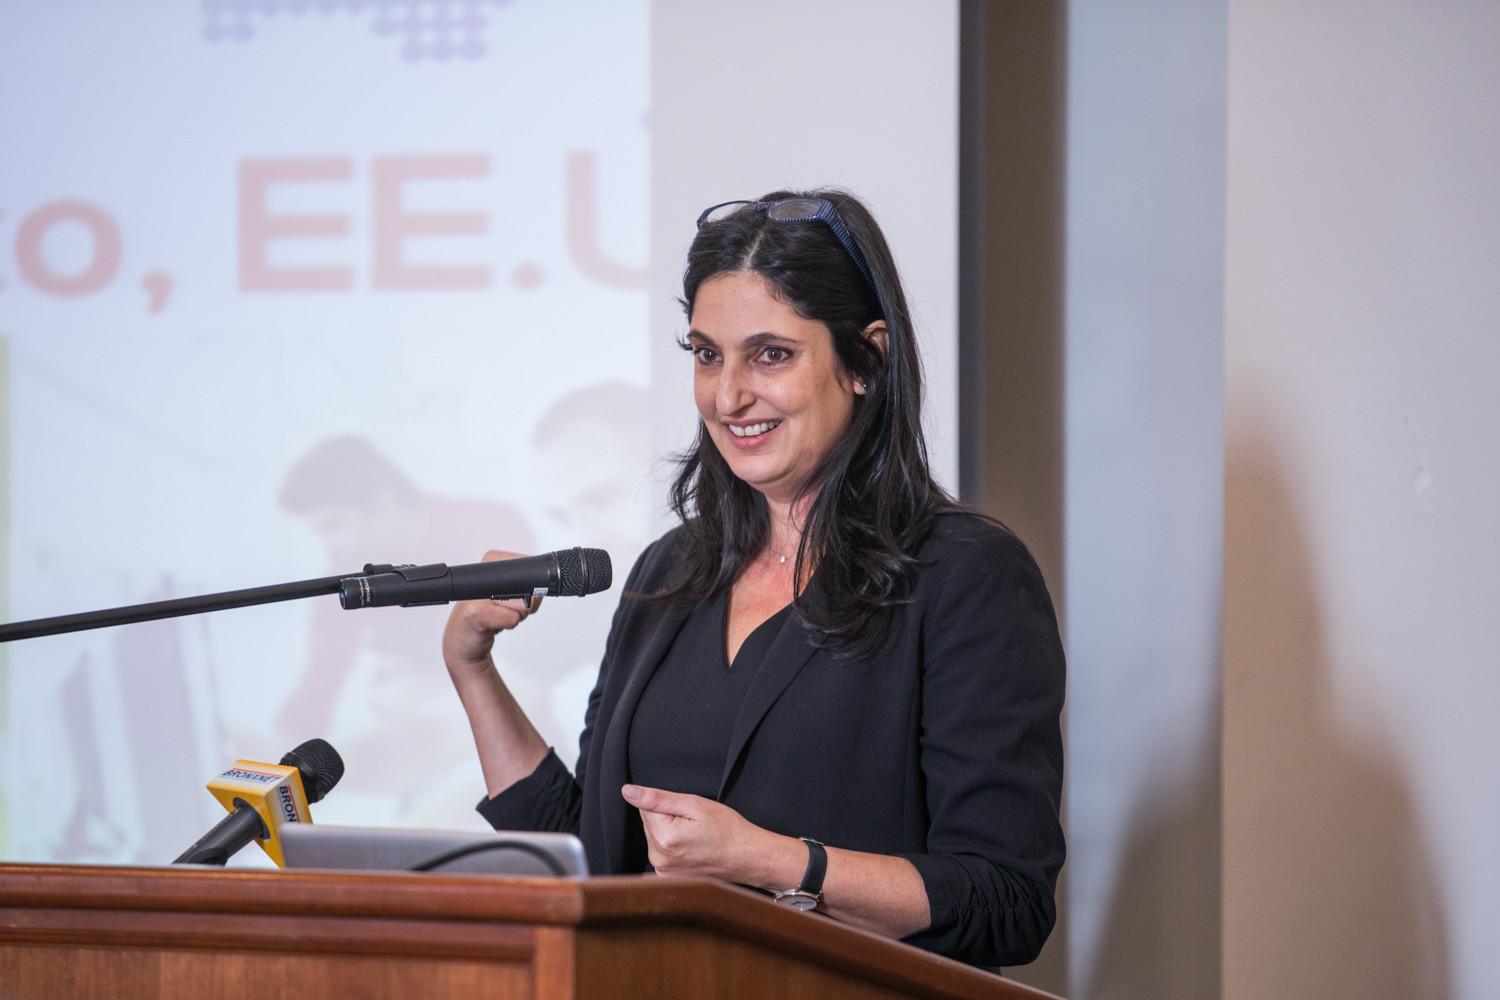 Anthropology professor Rima Brusi speaks at a Lehman College conference about the challenges Puerto Rico still faces in the aftermath of Hurricane Maria.